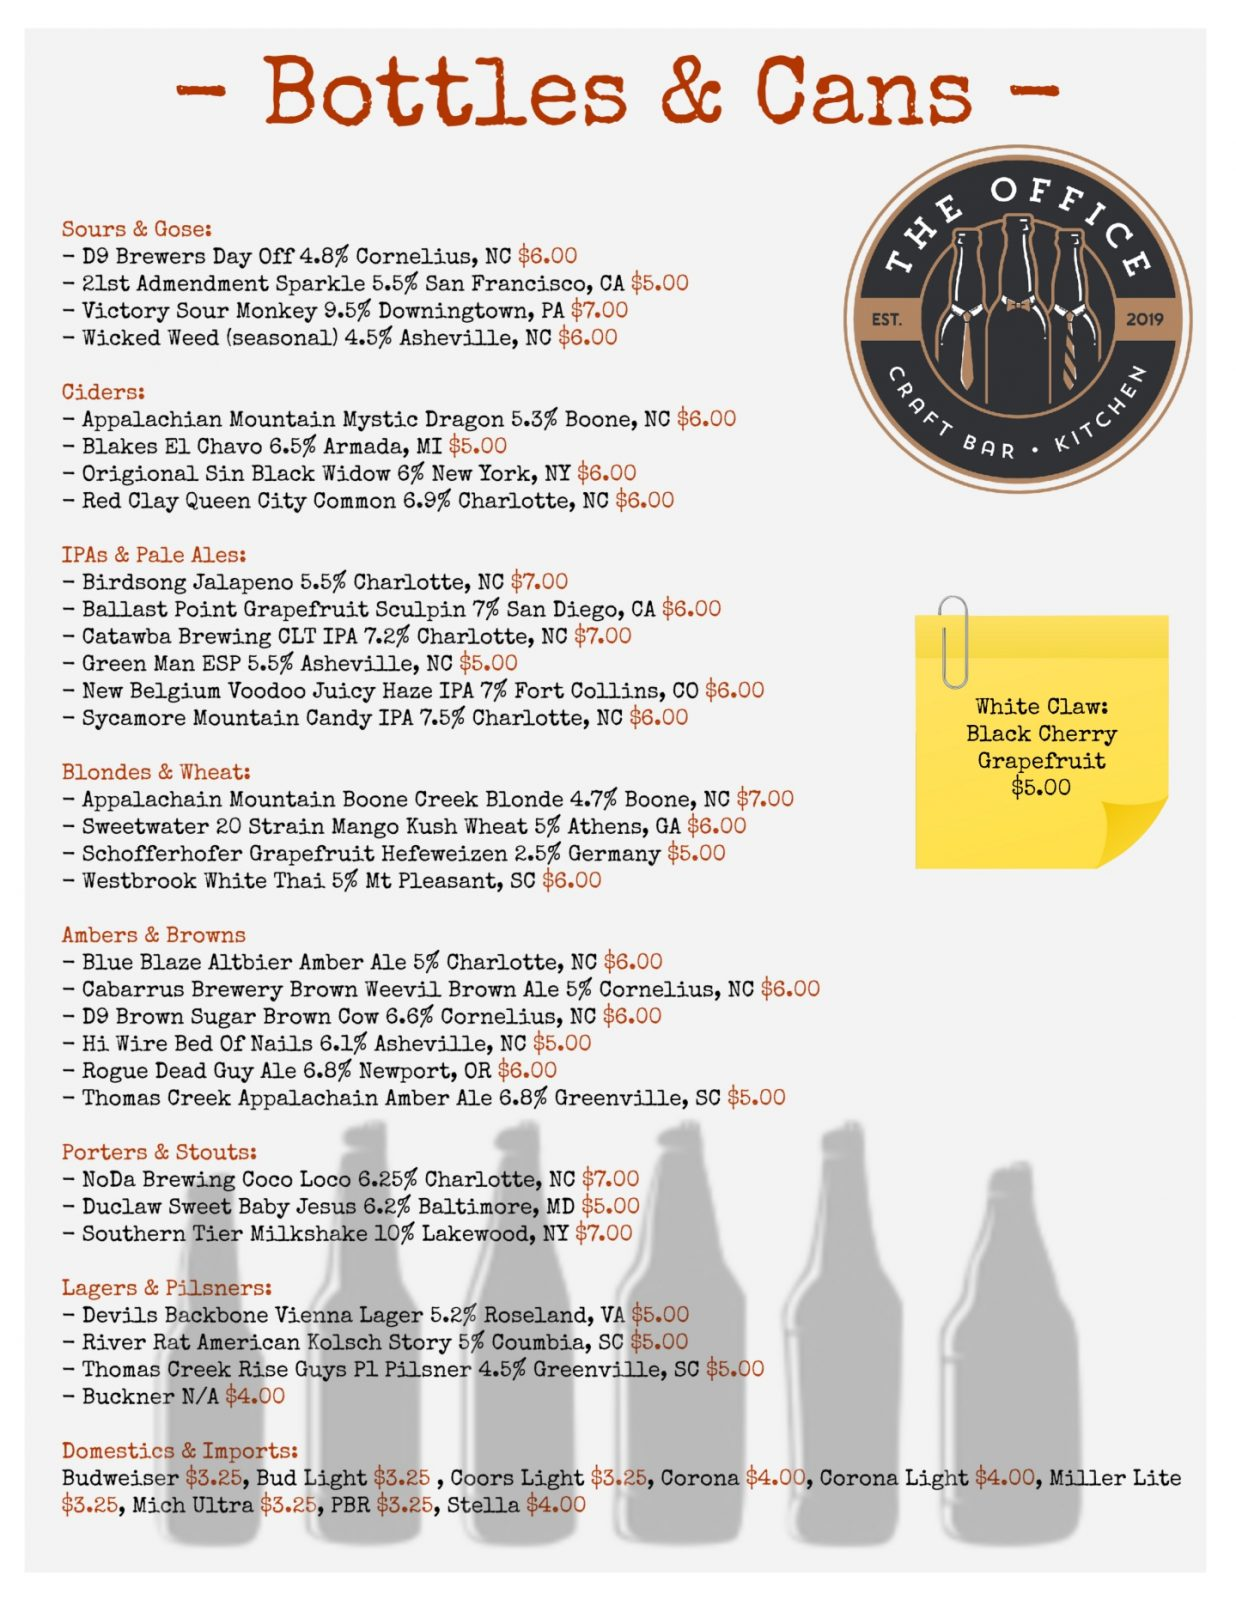 Bottles and cans menu